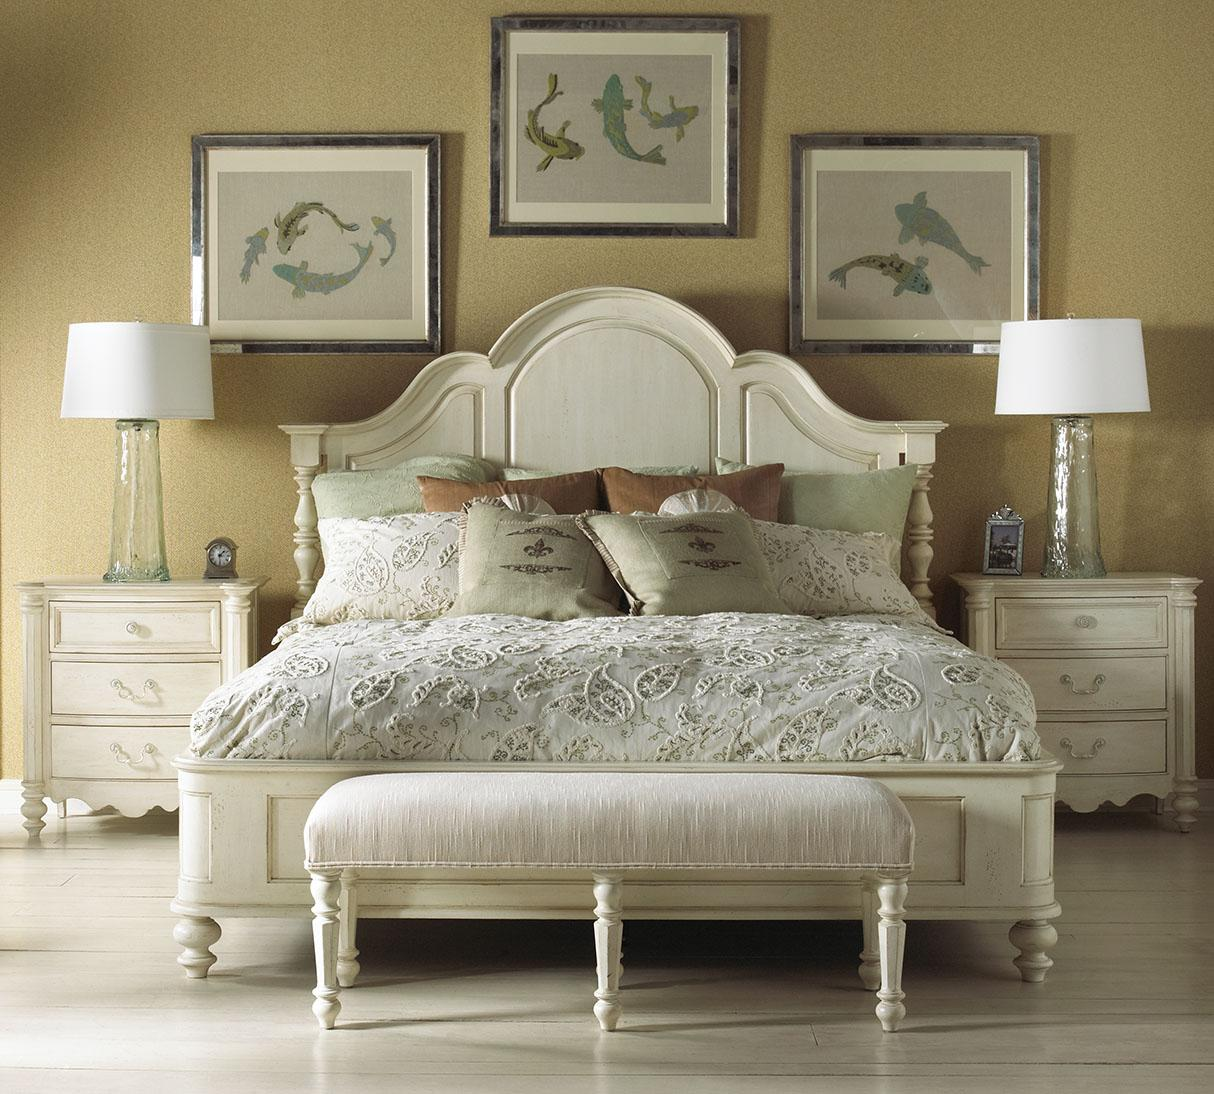 King Bedroom Group By Fine Furniture Design Wolf Furniture